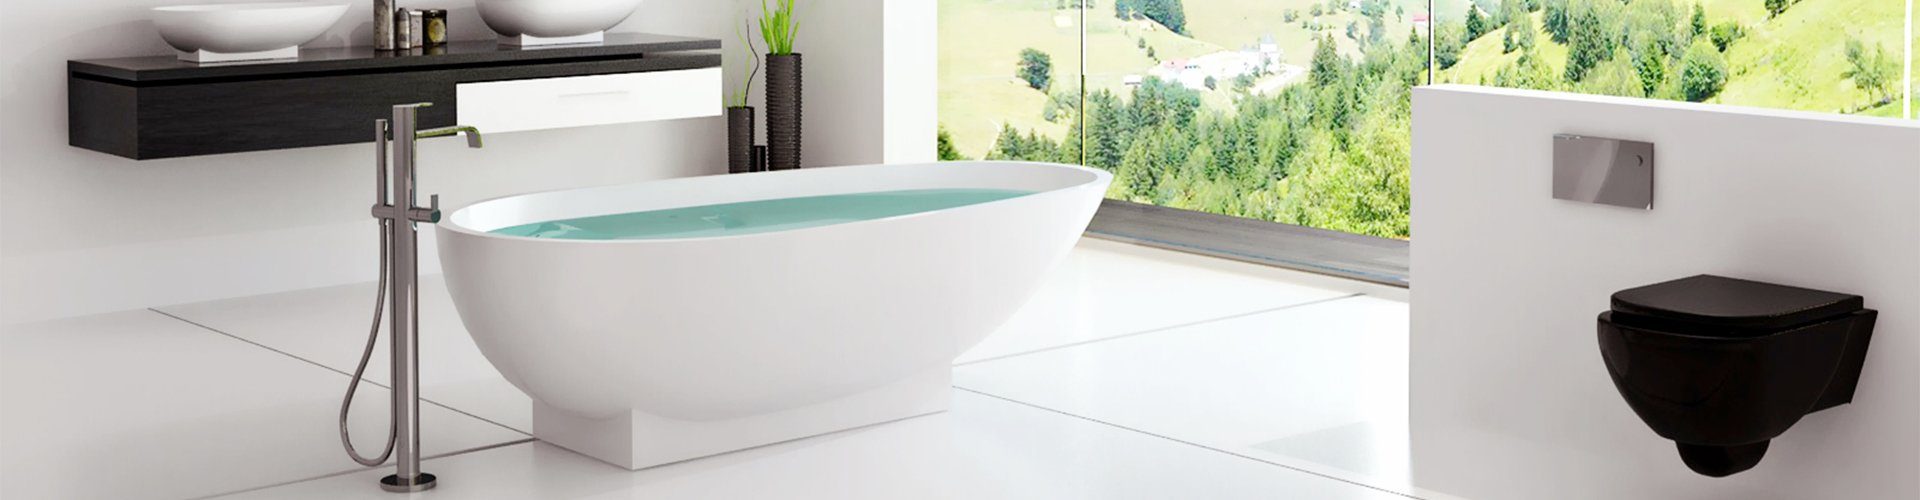 Oval shaped design solid surface counter top resin stone bathroom sink BS-8302-Bellissimo